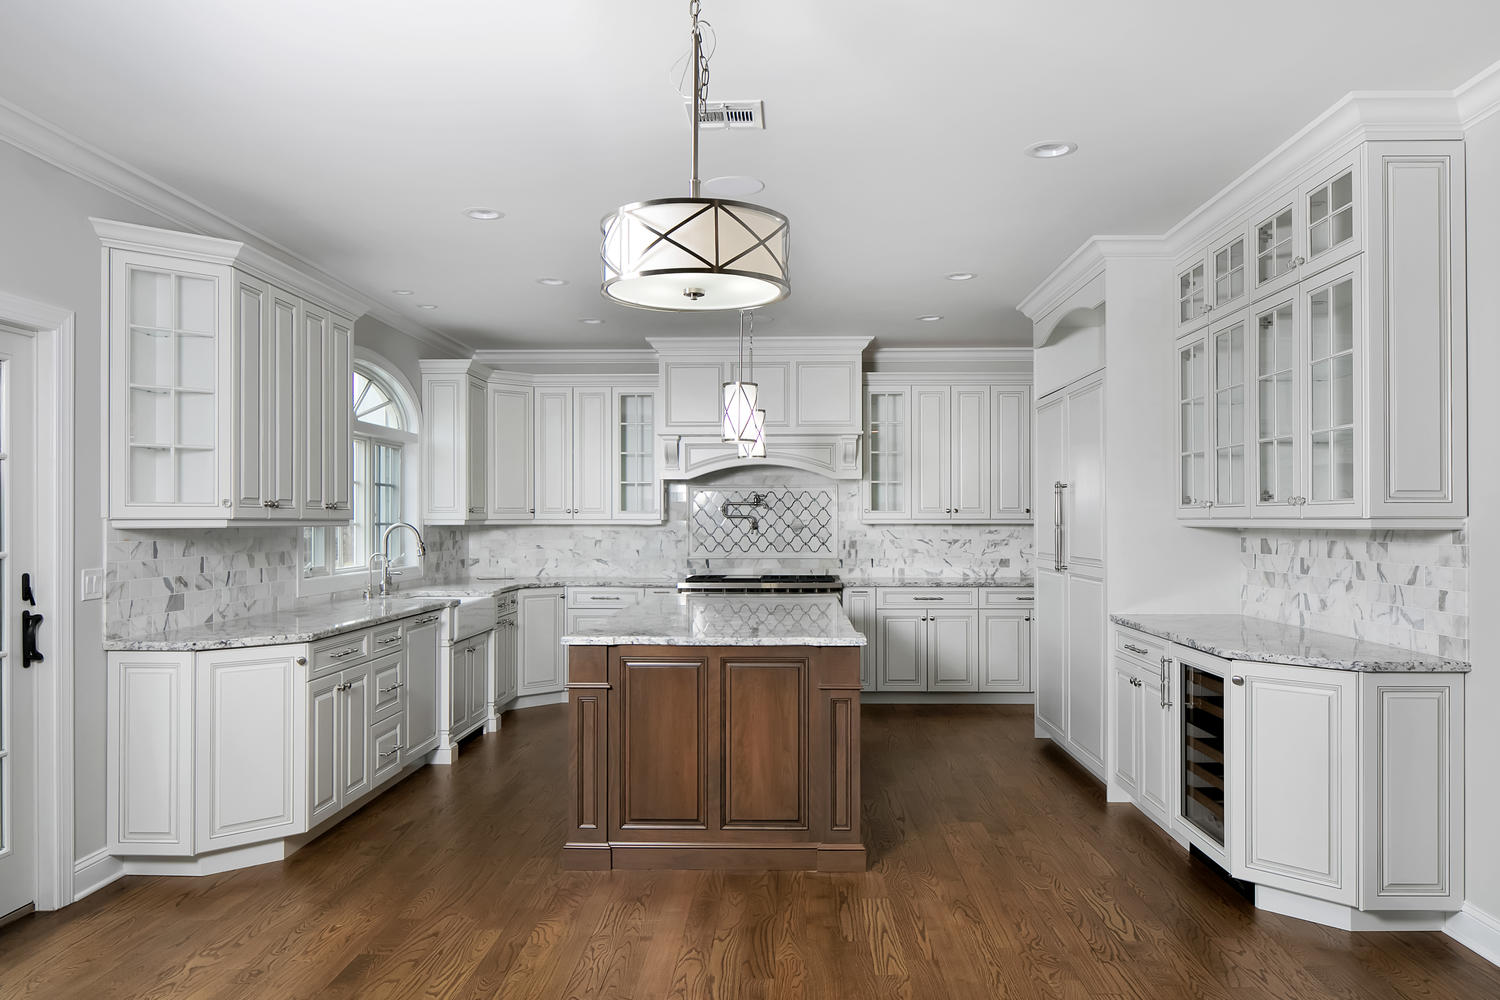 Traditional | Design Line Kitchens in Sea Girt, NJ